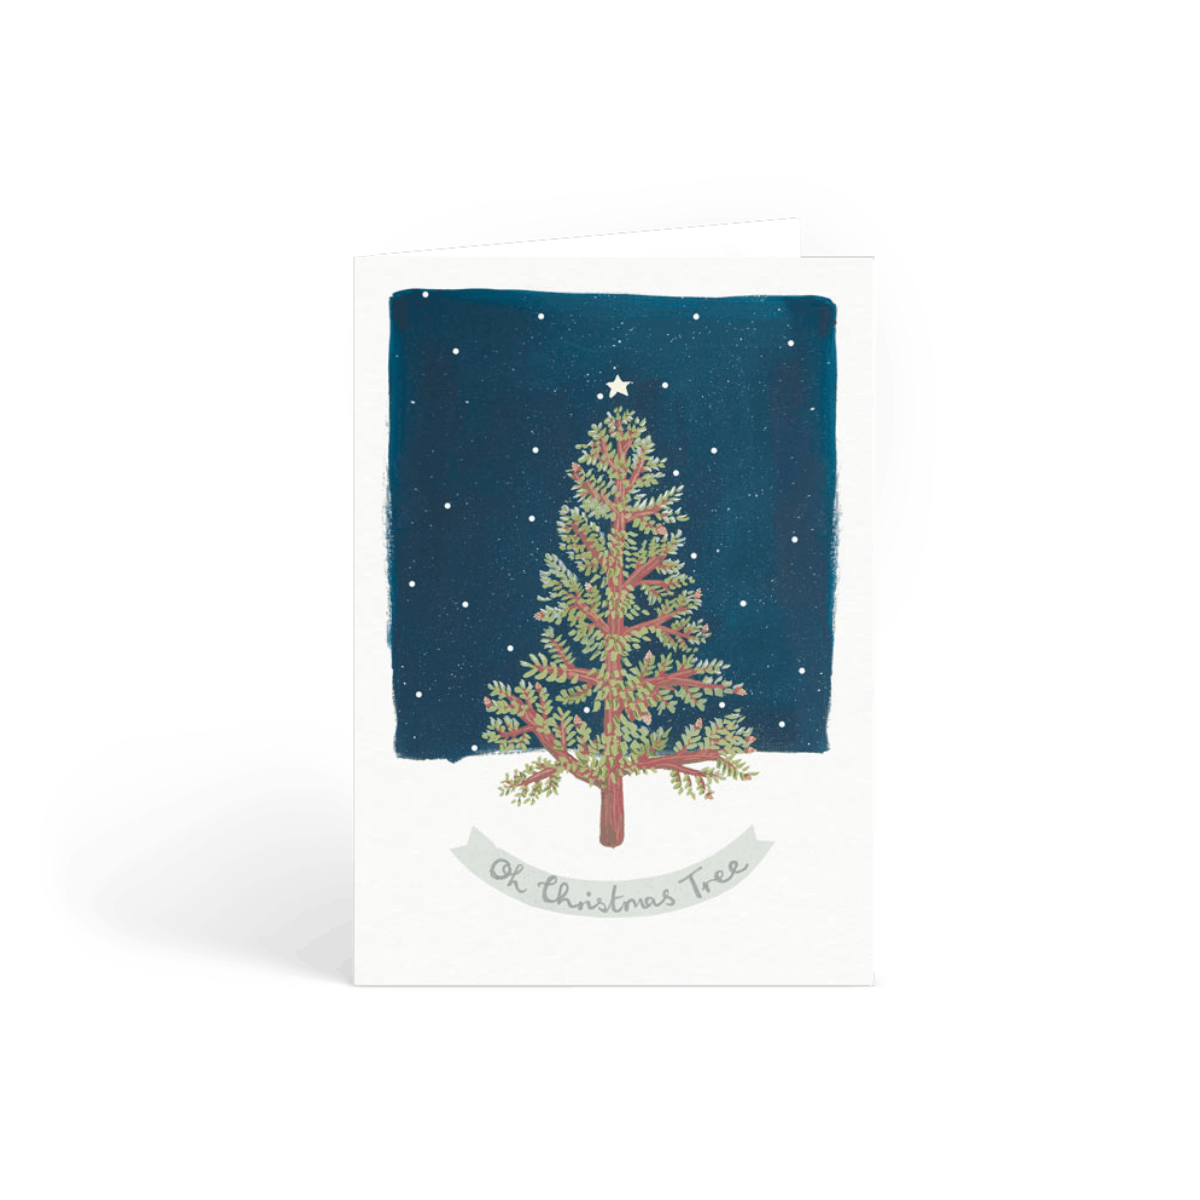 Https%3a%2f%2fwww.papier.com%2fproduct image%2f10424%2f2%2foh christmas tree 2658 front 1542213829.png?ixlib=rb 1.1